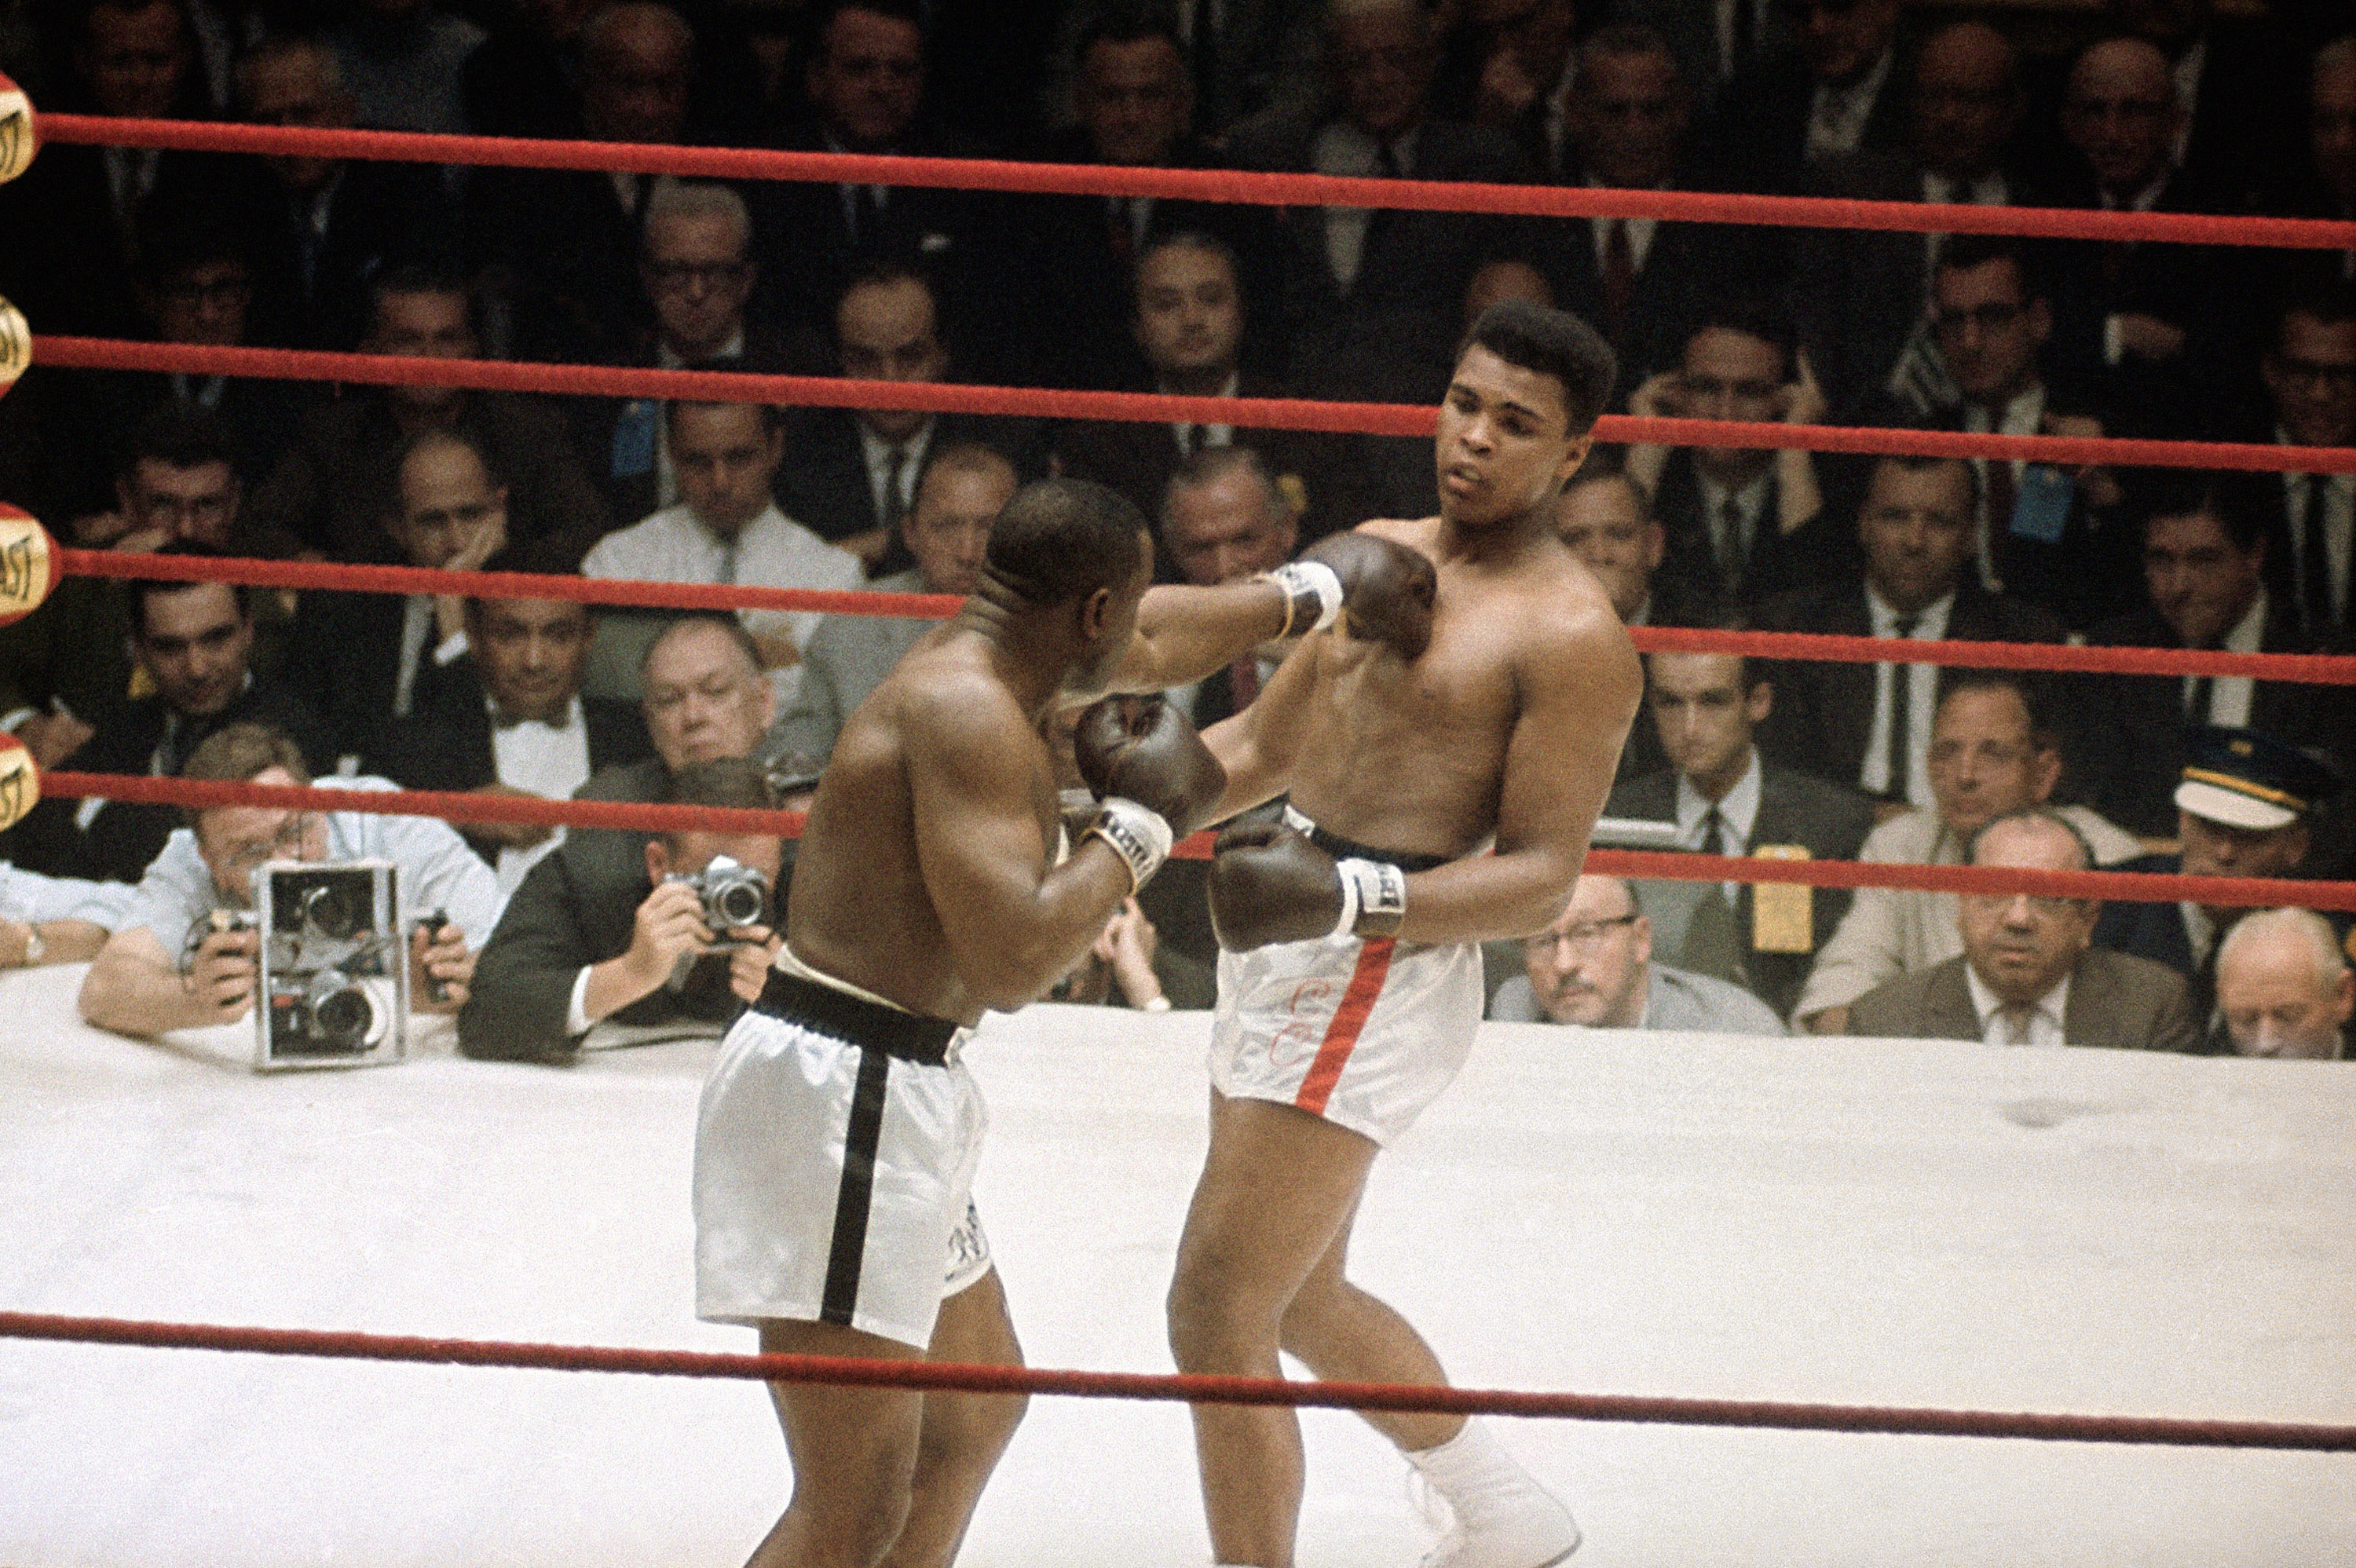 FBI suspected iconic 1964 Ali-Liston fight was rigged by mob